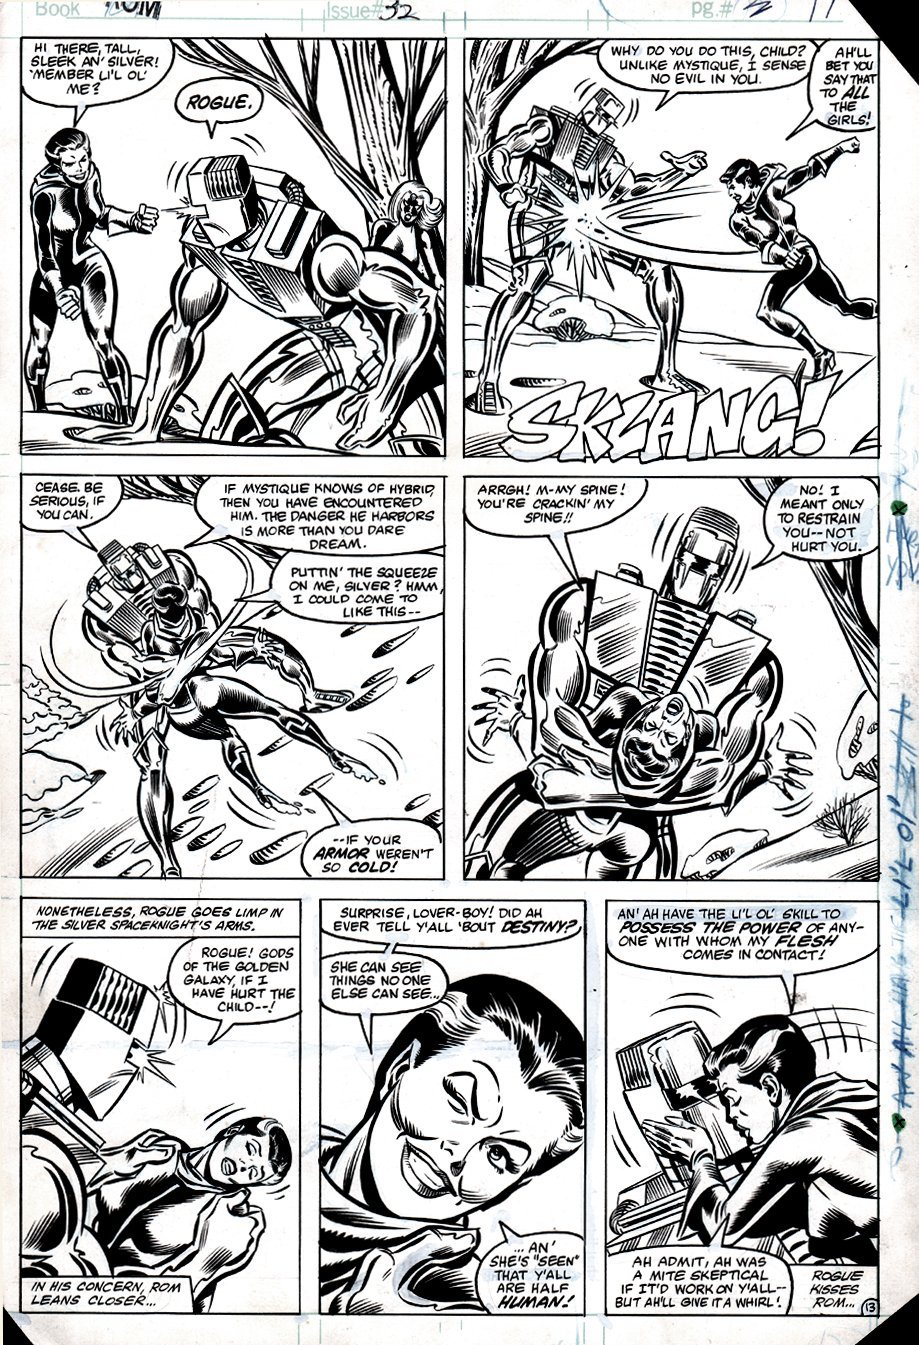 ROM #32 p 13 (VERY EARLY ROGUE APPEARANCE & FIRST KISSING ROM!) 1982